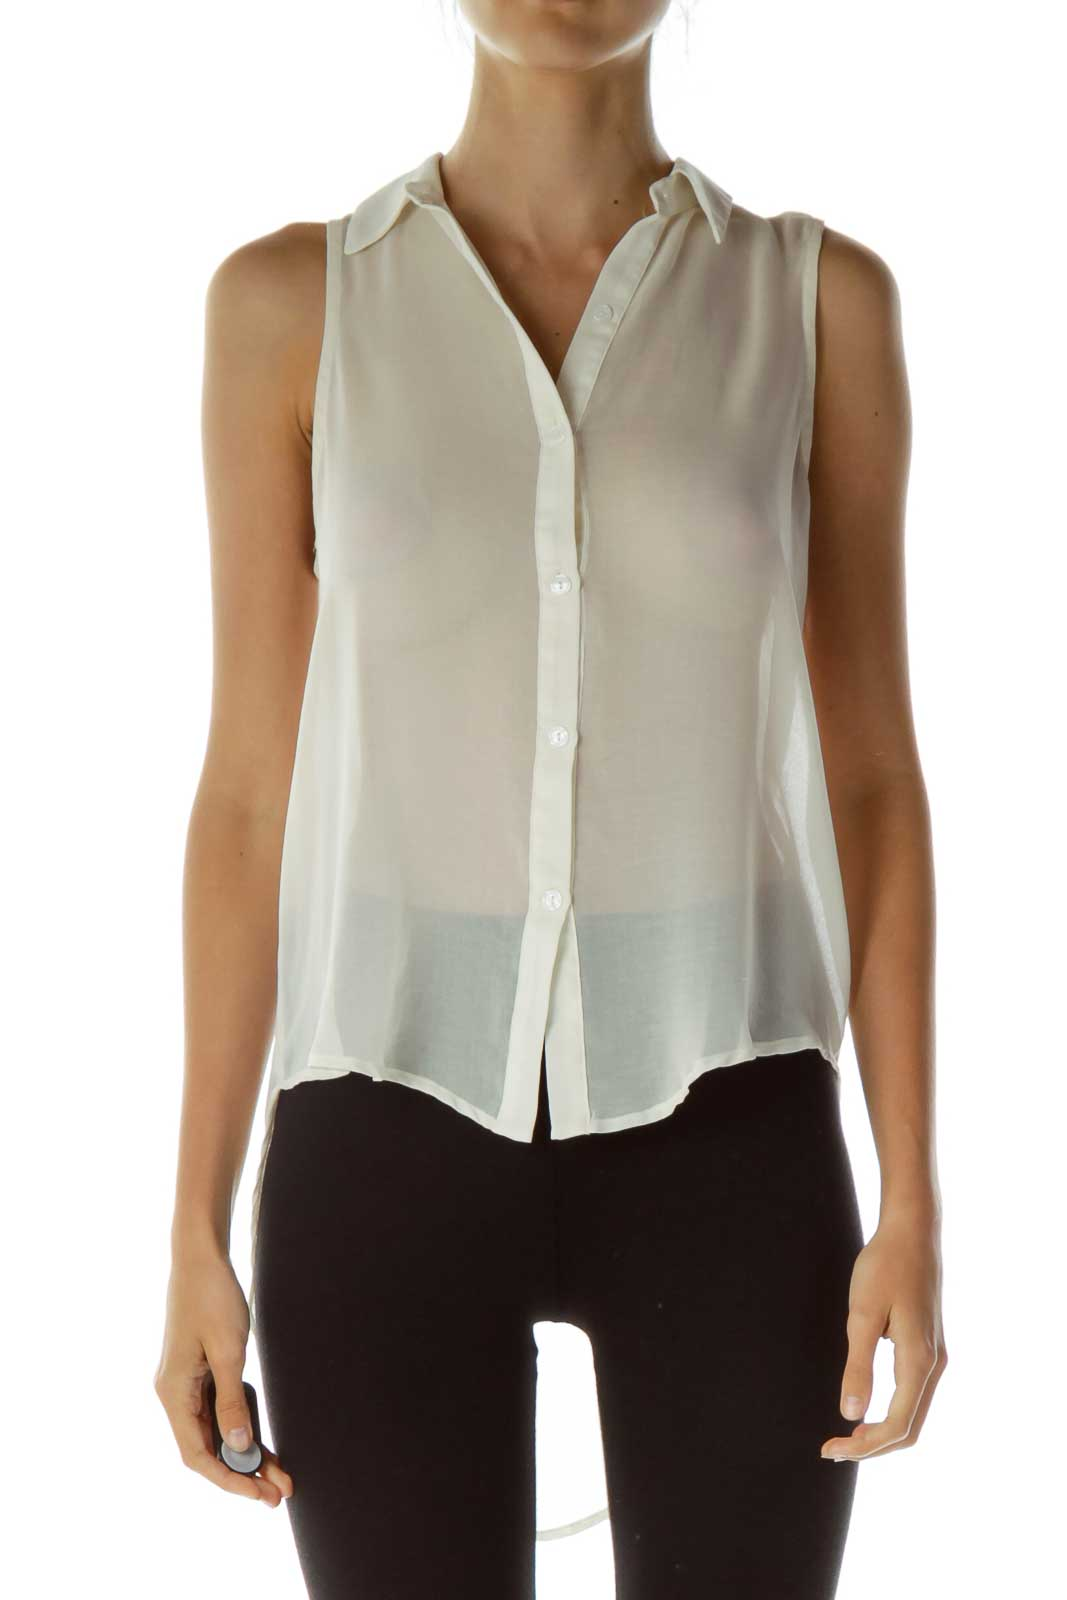 Beige Sheer Sleeveless Top